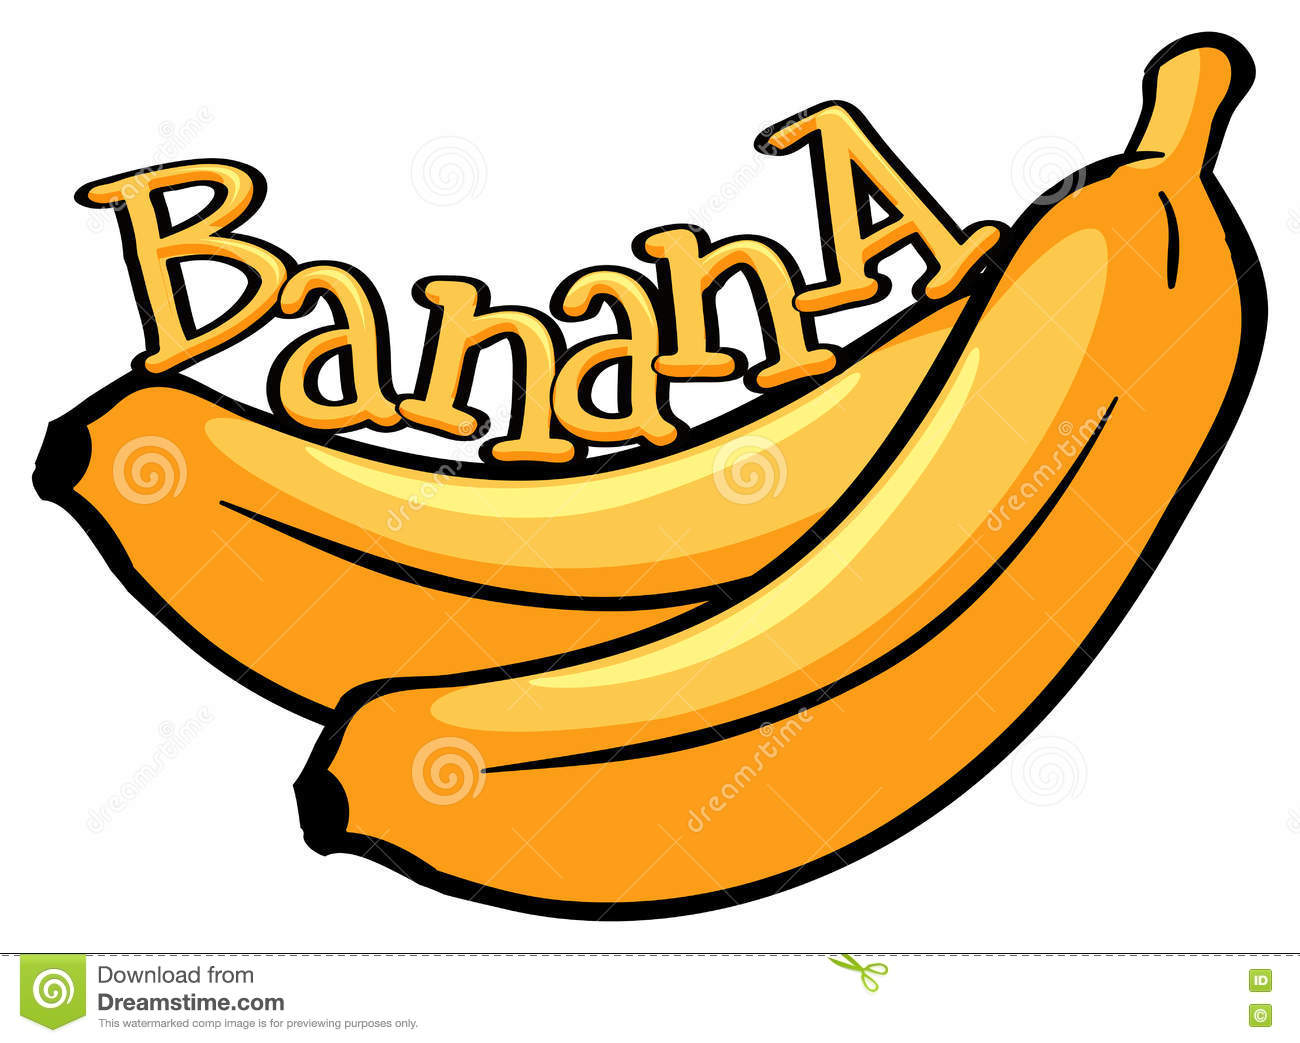 bananas word Banana - translation to irish gaelic and irish gaelic audio pronunciation of  translations: see more in new english-irish dictionary from foras na gaeilge.